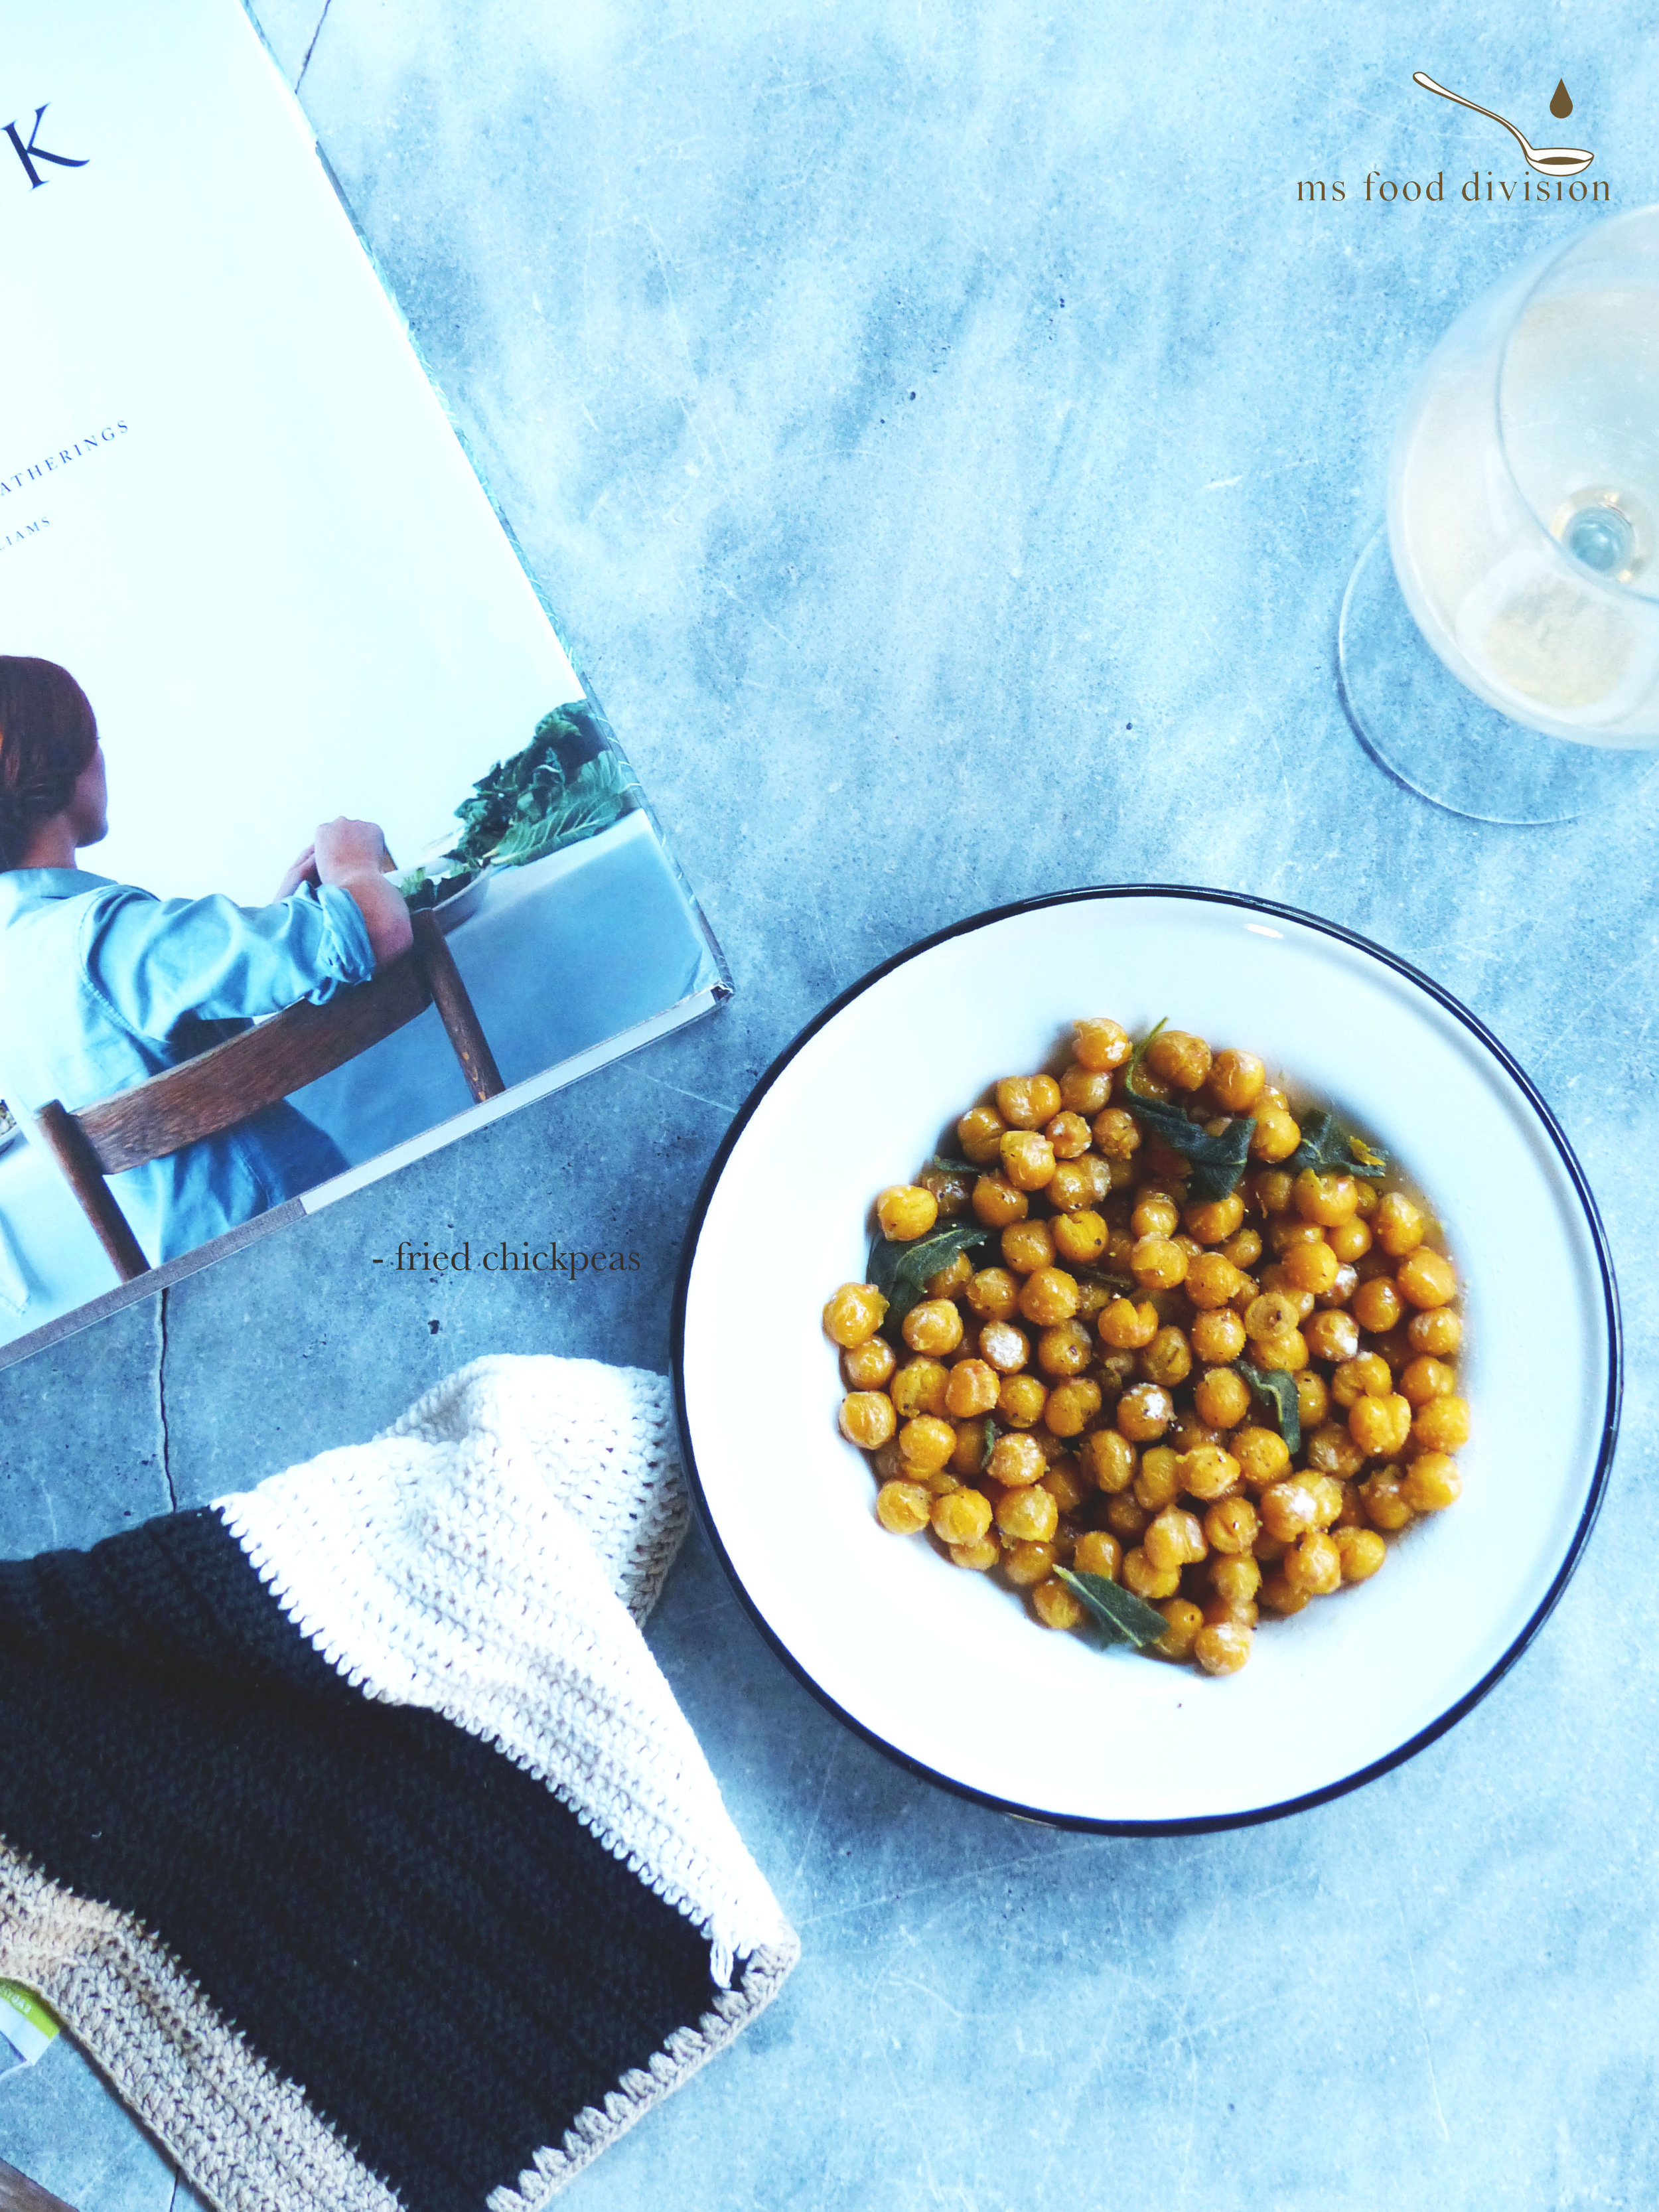 Fried chickpeas are super easy to make.  The only thing that needs to be done ahead of time is to soak the chickpeas overnight in cold water.  Then pat dry before you fry them in oil with sage.  Season and voilà.